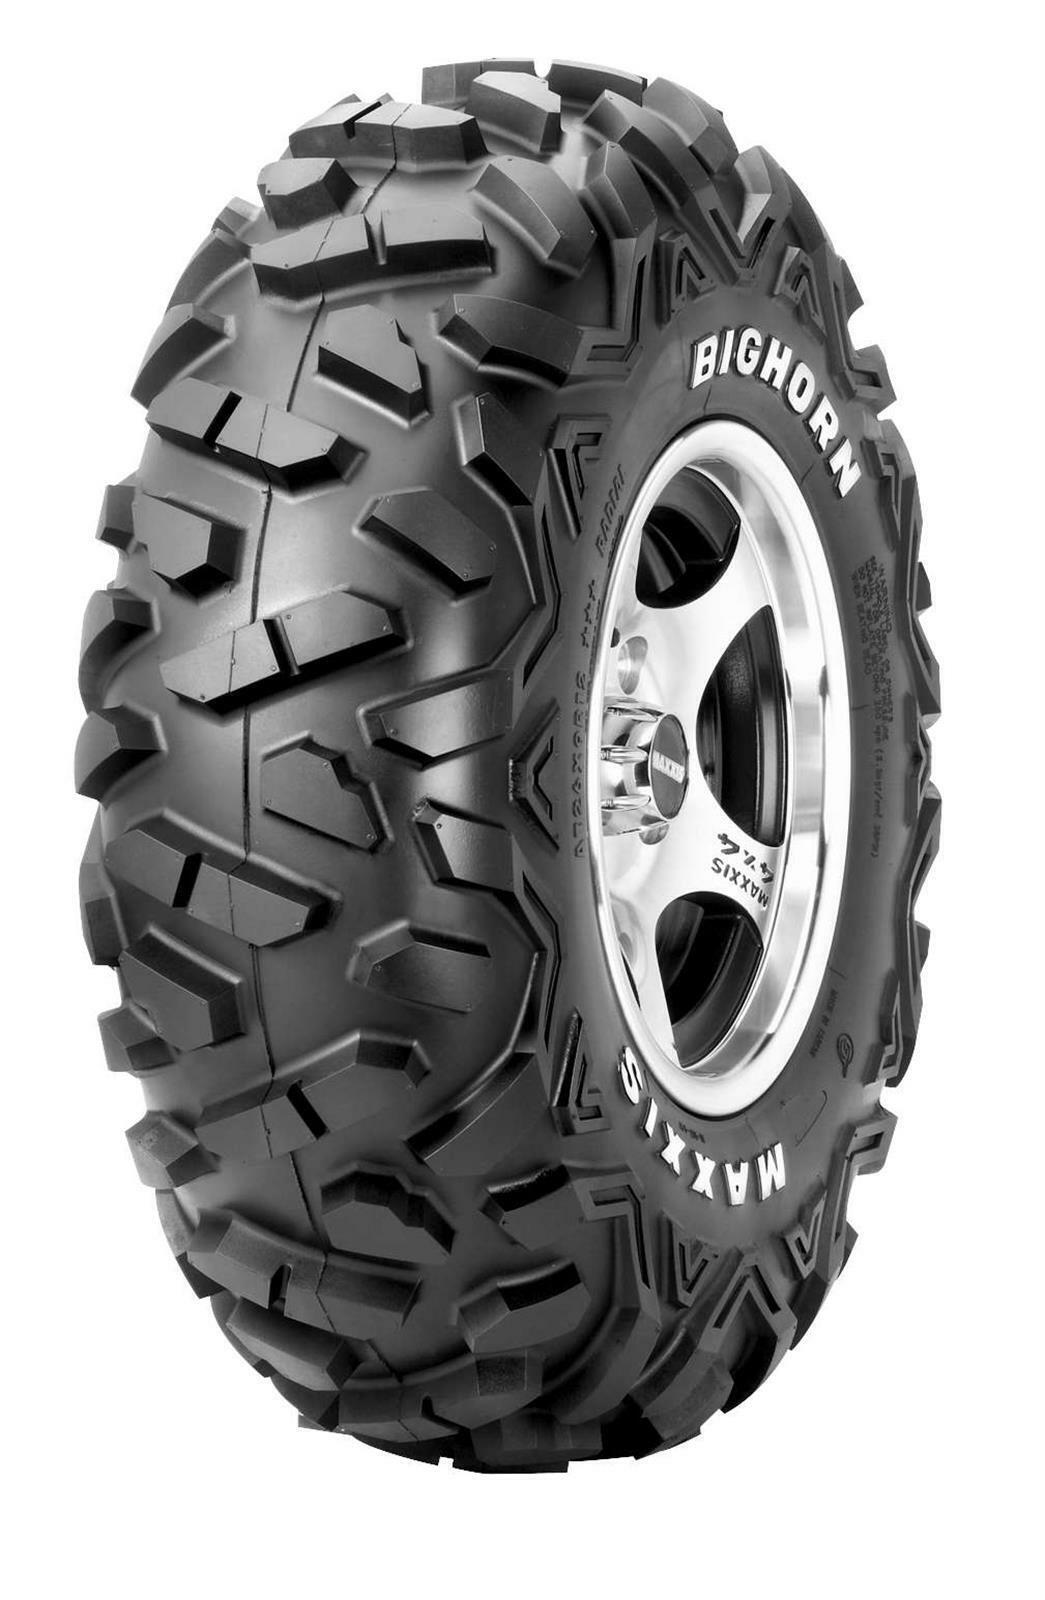 MAXXIS BIGHORN M917 AND M918 RADIAL TIRES TM00296100